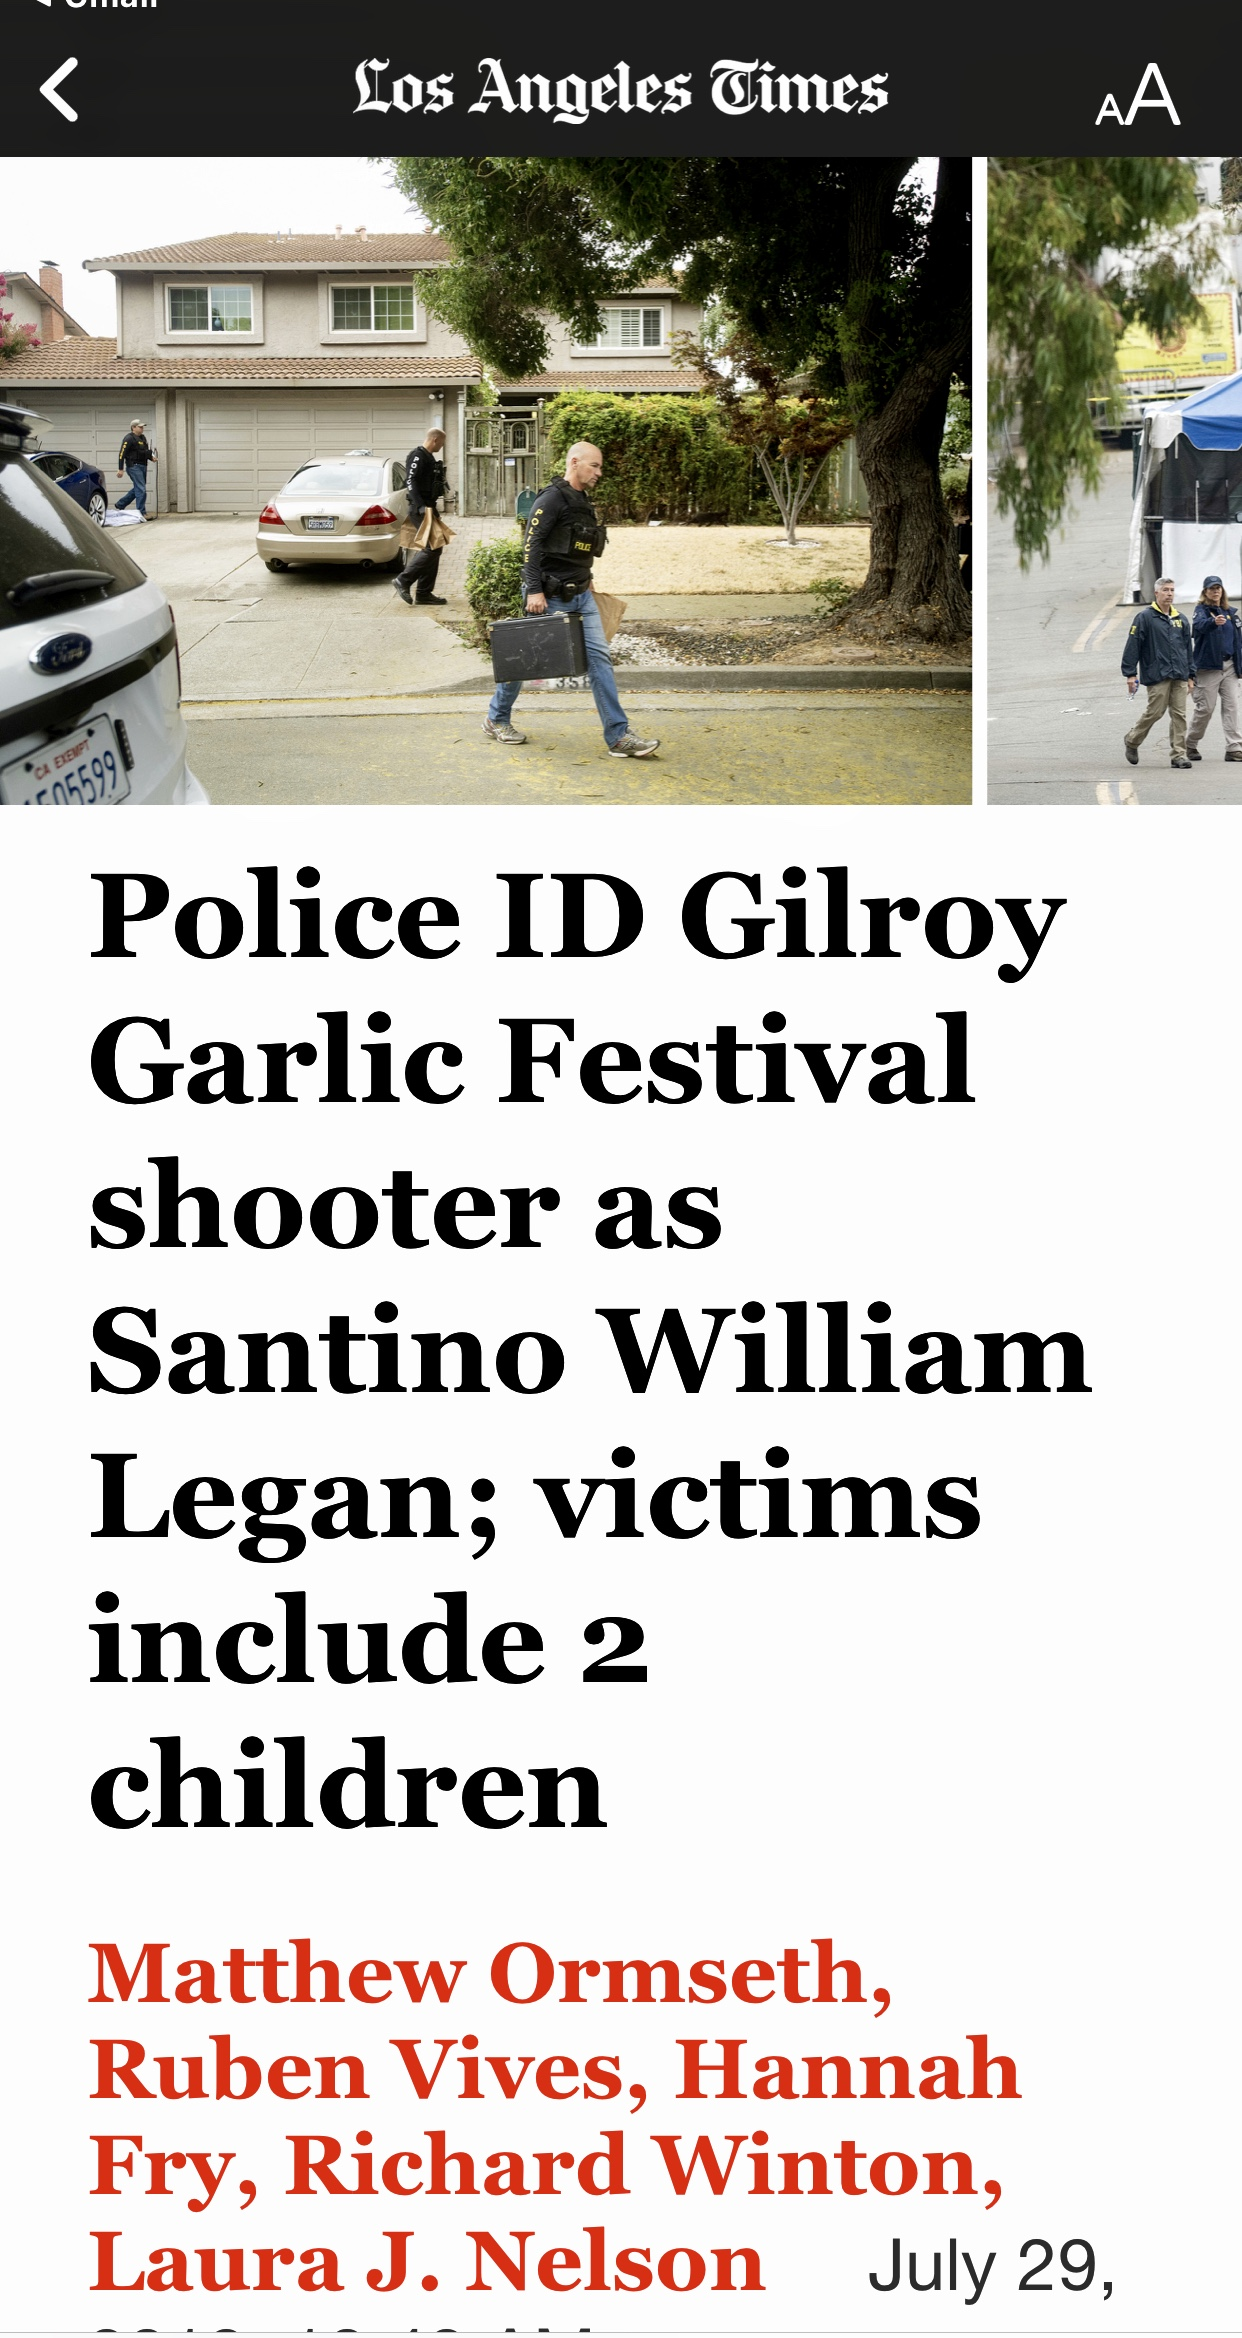 Police ID Gilroy Garlic Festival shooter as Santino William Legan; victims include 2 children